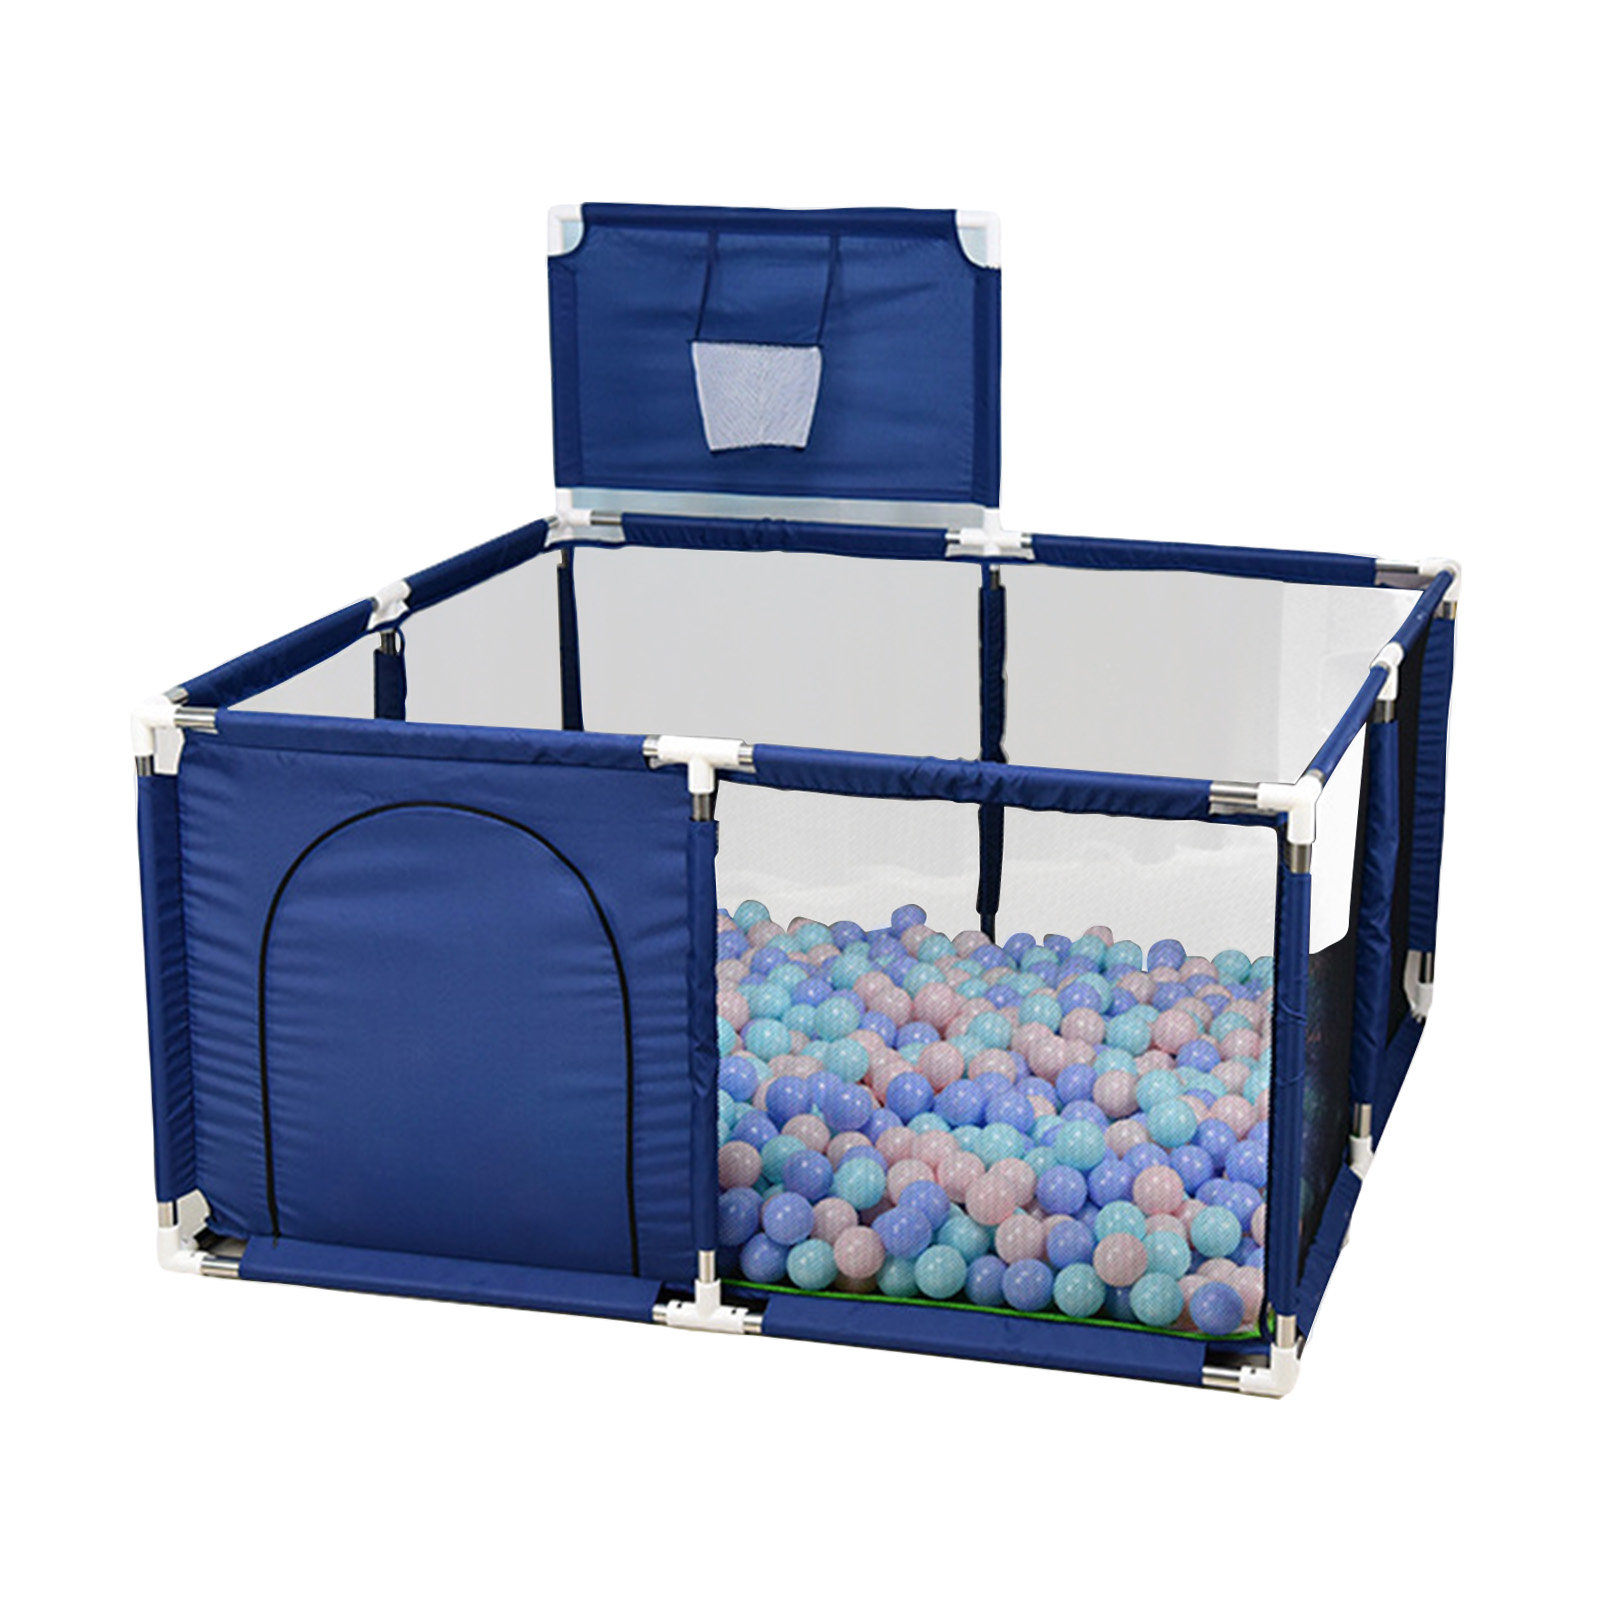 Baby Playpen With Basketball Children's Playpen Children's Pool Bed Baby Fence Indoor Playground Field Game Center For Kids